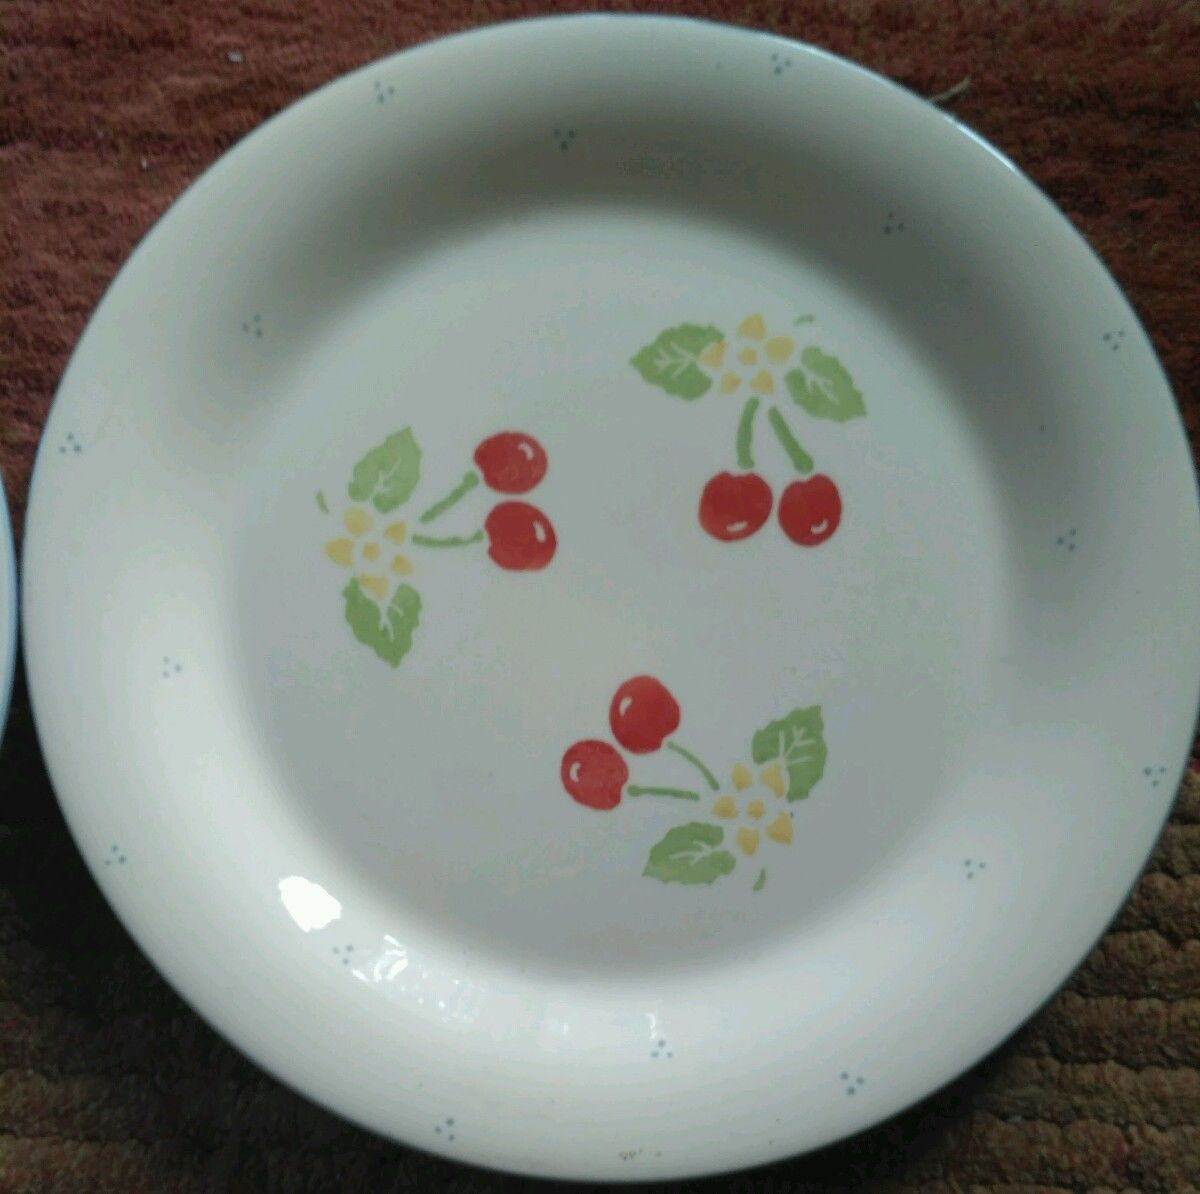 2 LAURA ASHLEY MORELLO CHERRY LARGE DINNER PLATE RED BLUE CREAM TABLEWARE : laura ashley dinnerware - pezcame.com